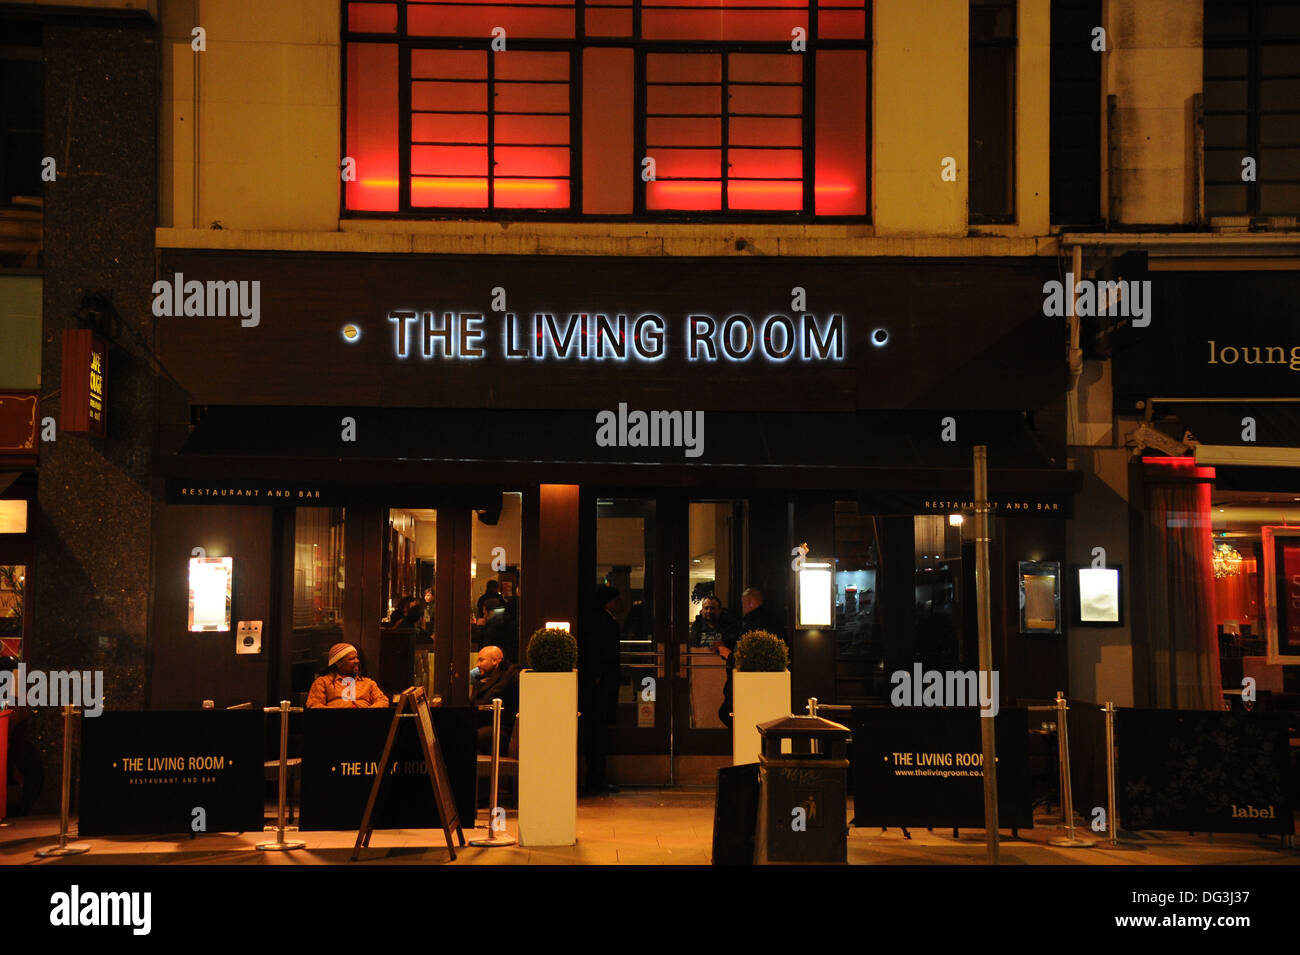 The Living Room Restaurant the living room restaurant stock photos & the living room